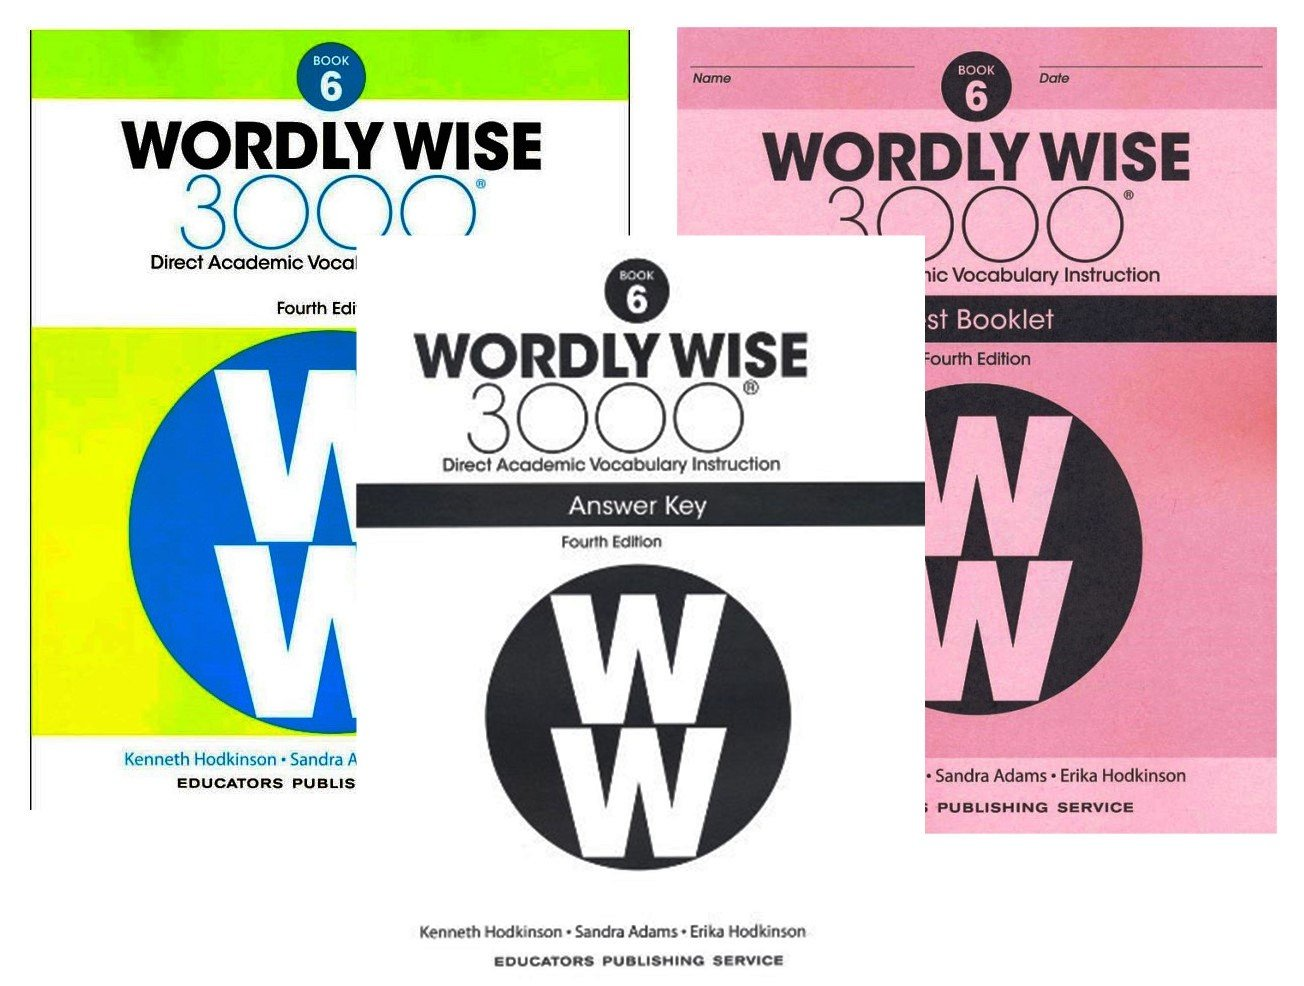 Wordly wise 3000 4th edition grade 6 set student book test wordly wise 3000 4th edition grade 6 set student book test booklet and answer key direct academic vocabulary instruction unknown amazon books fandeluxe Image collections